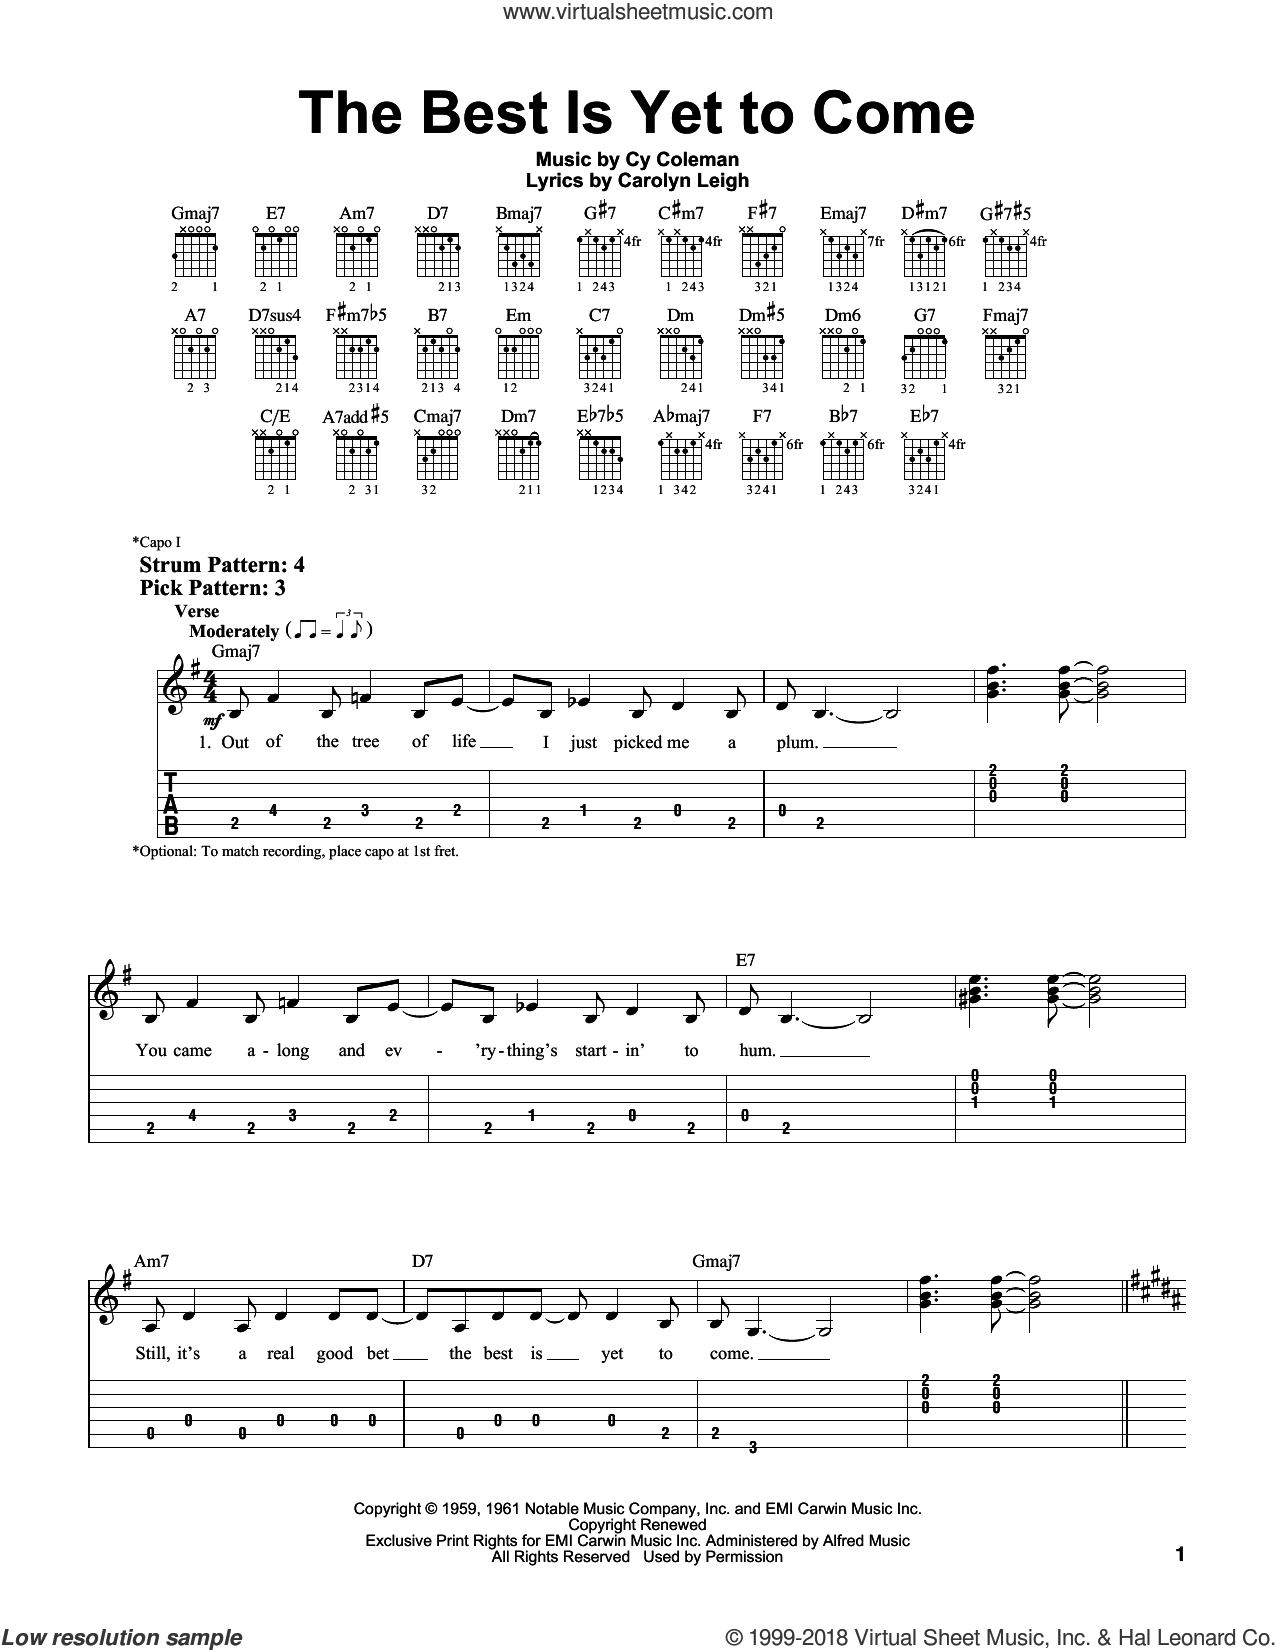 The Best Is Yet To Come sheet music for guitar solo (easy tablature) by Frank Sinatra, Carolyn Leigh and Cy Coleman. Score Image Preview.